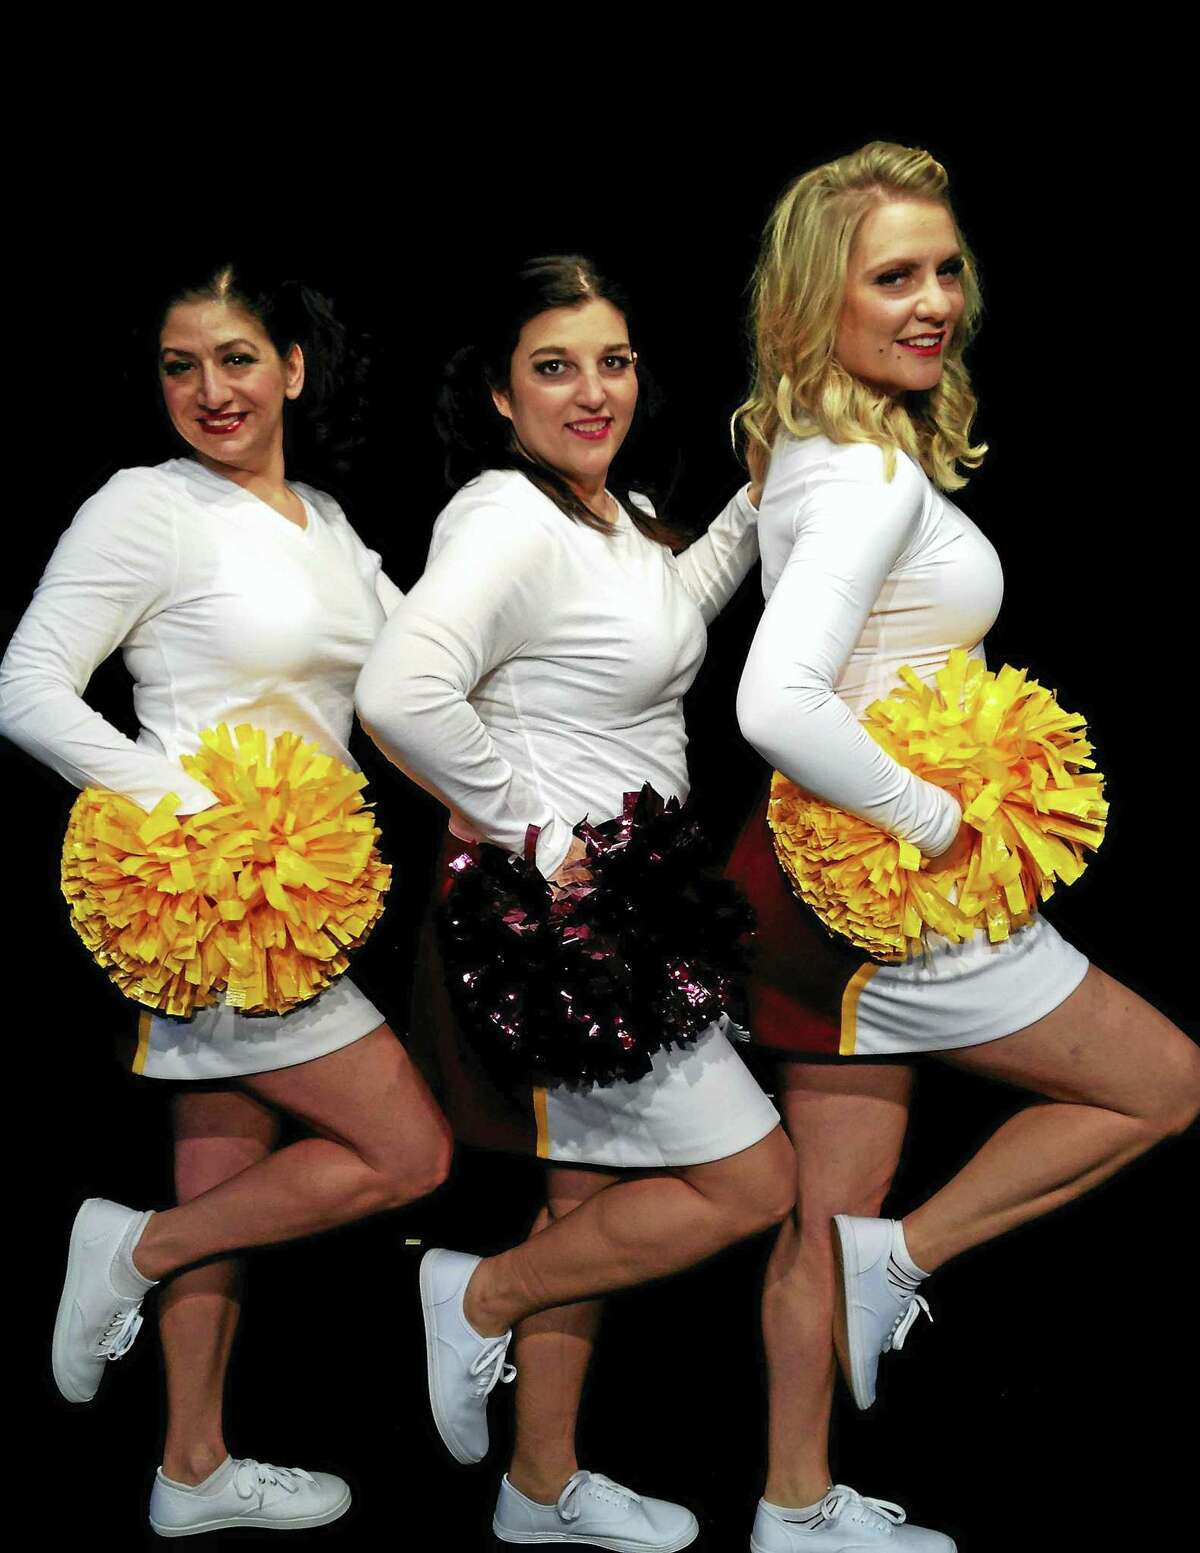 Contributed photos Kristin Iovene, Meagan Palmer and Maria Pompile star in Vanities, a bittersweet comedy running Feb. 19-March 26 at the Connecticut Cabaret Theatre.